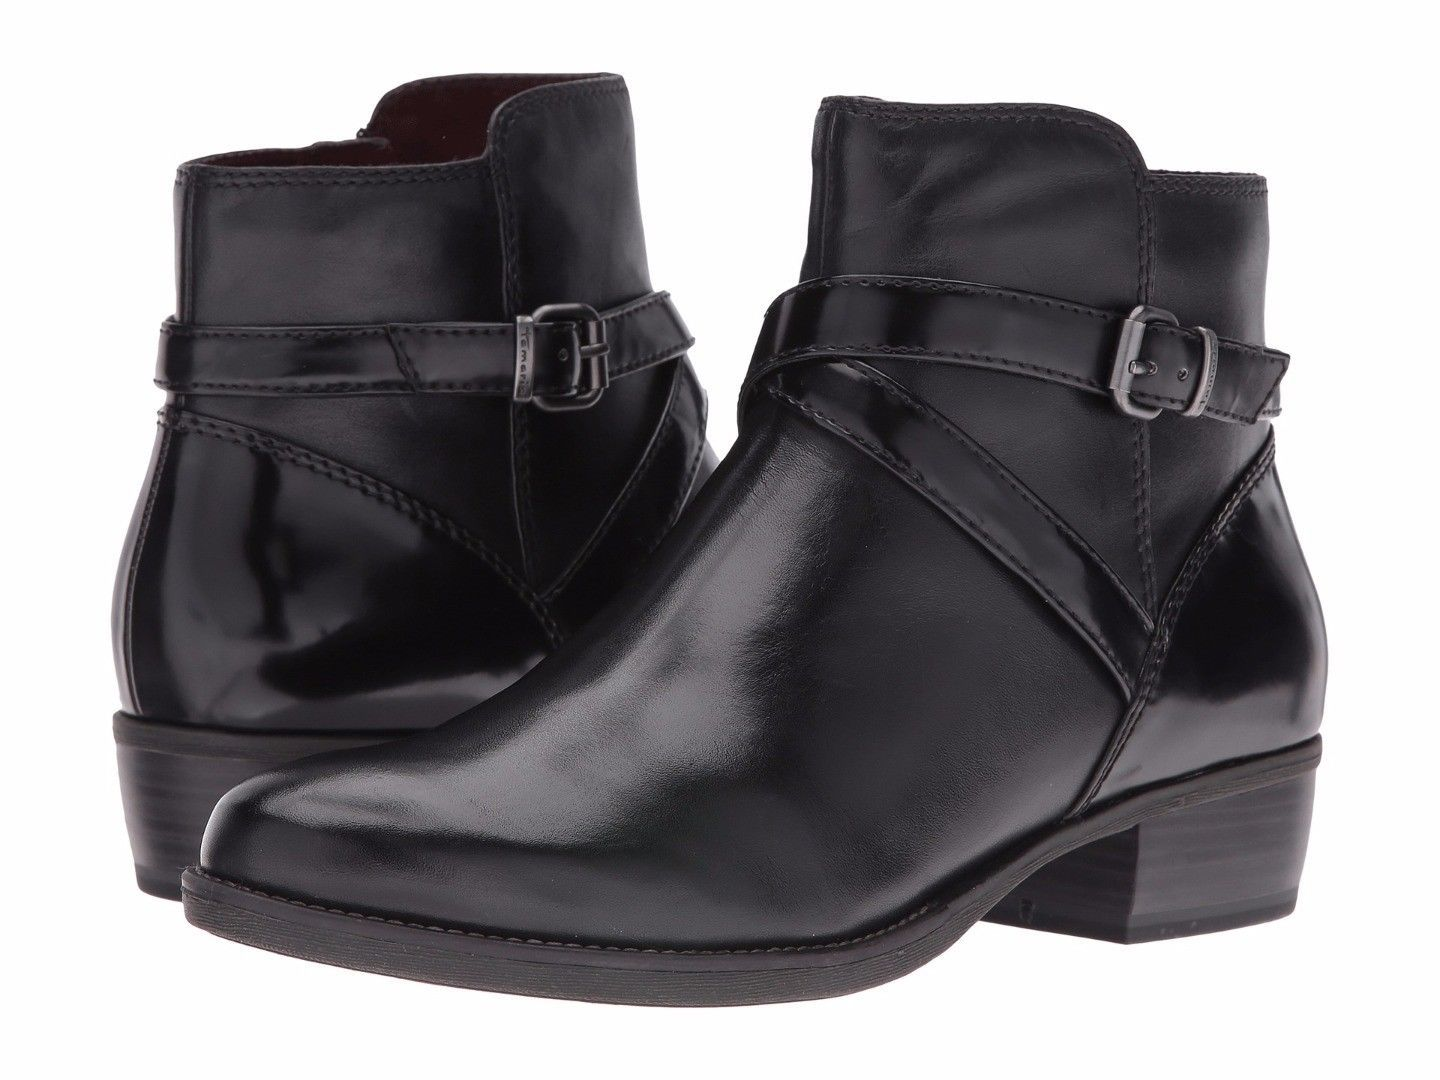 Details about Tamaris Marly Black Leather Ankle Boots